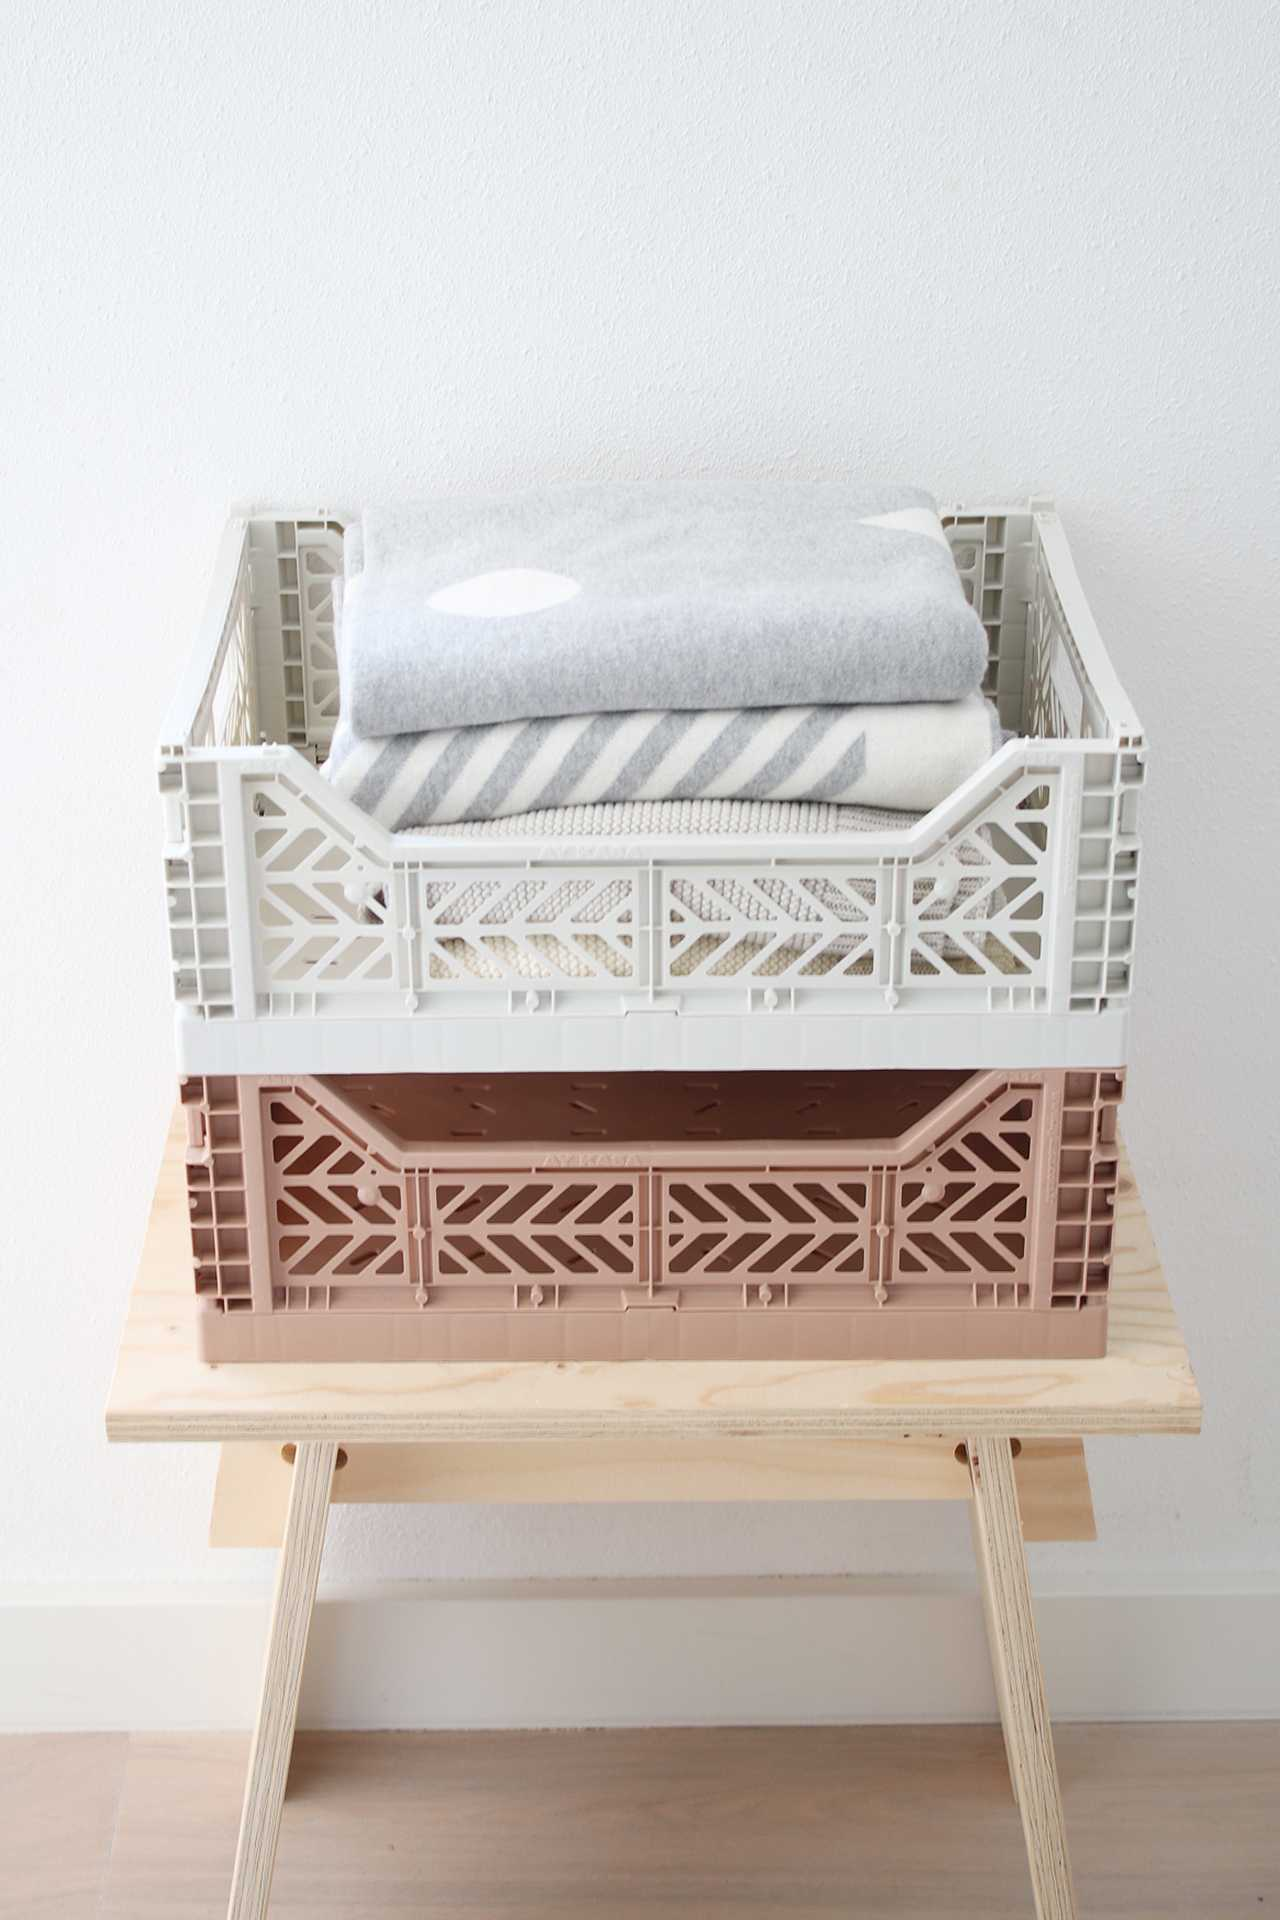 Folding Crate: Midi Stackable Storage Crate - Lime Cream